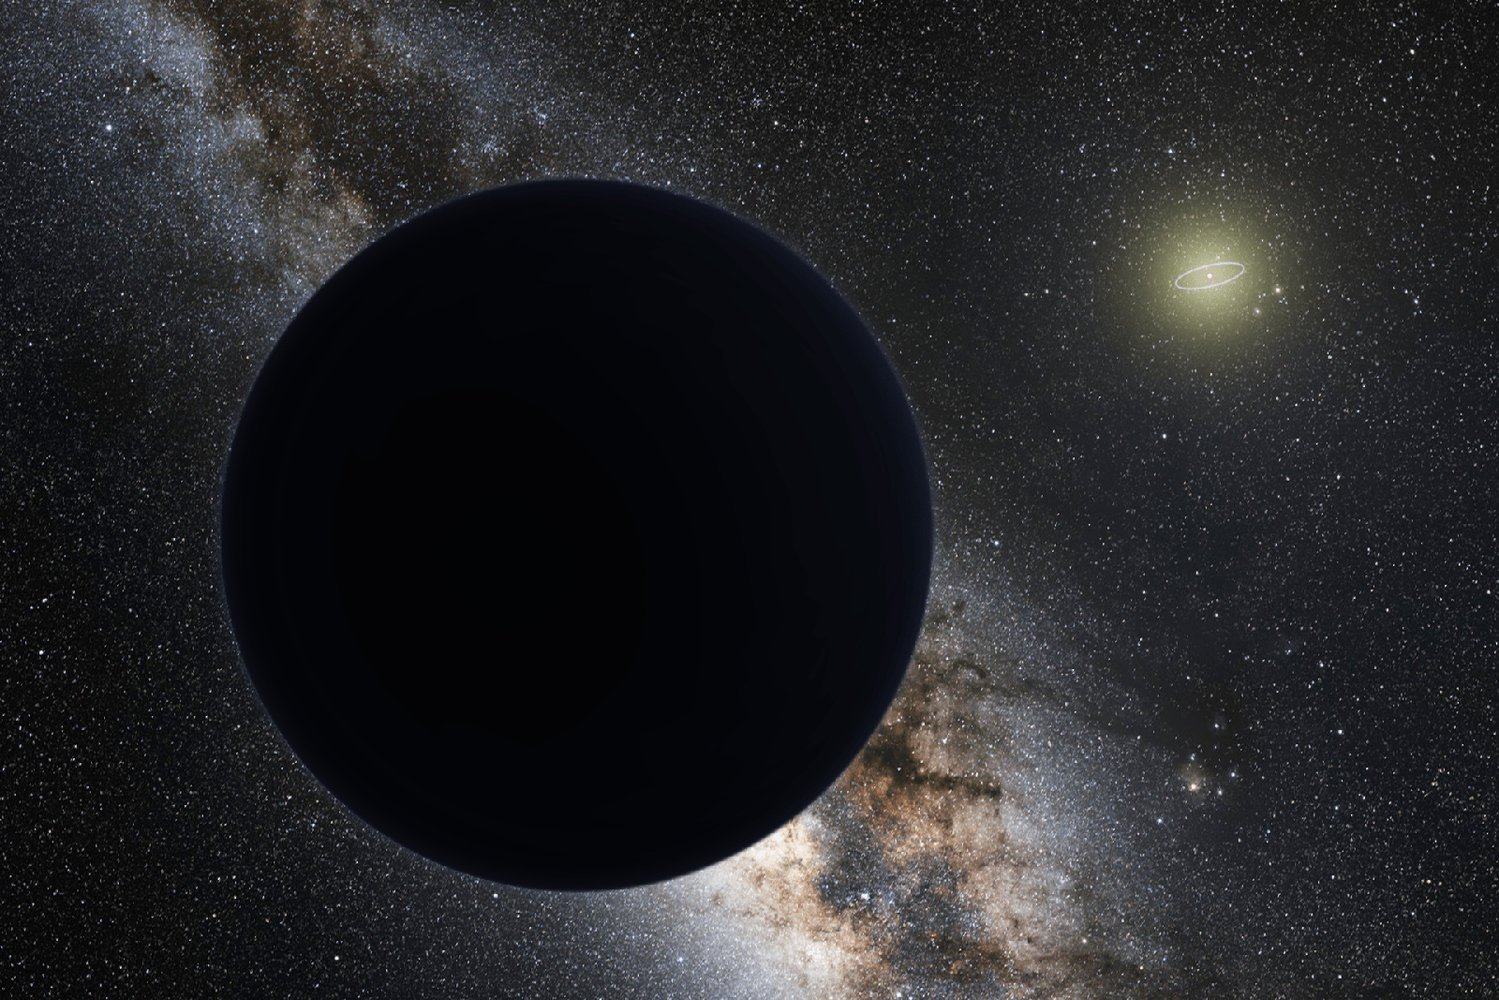 Planet Nine Could Be Our Solar System's Missing 'Super Earth' https://t.co/SexZTEDVh8 https://t.co/hapGTfqWKn